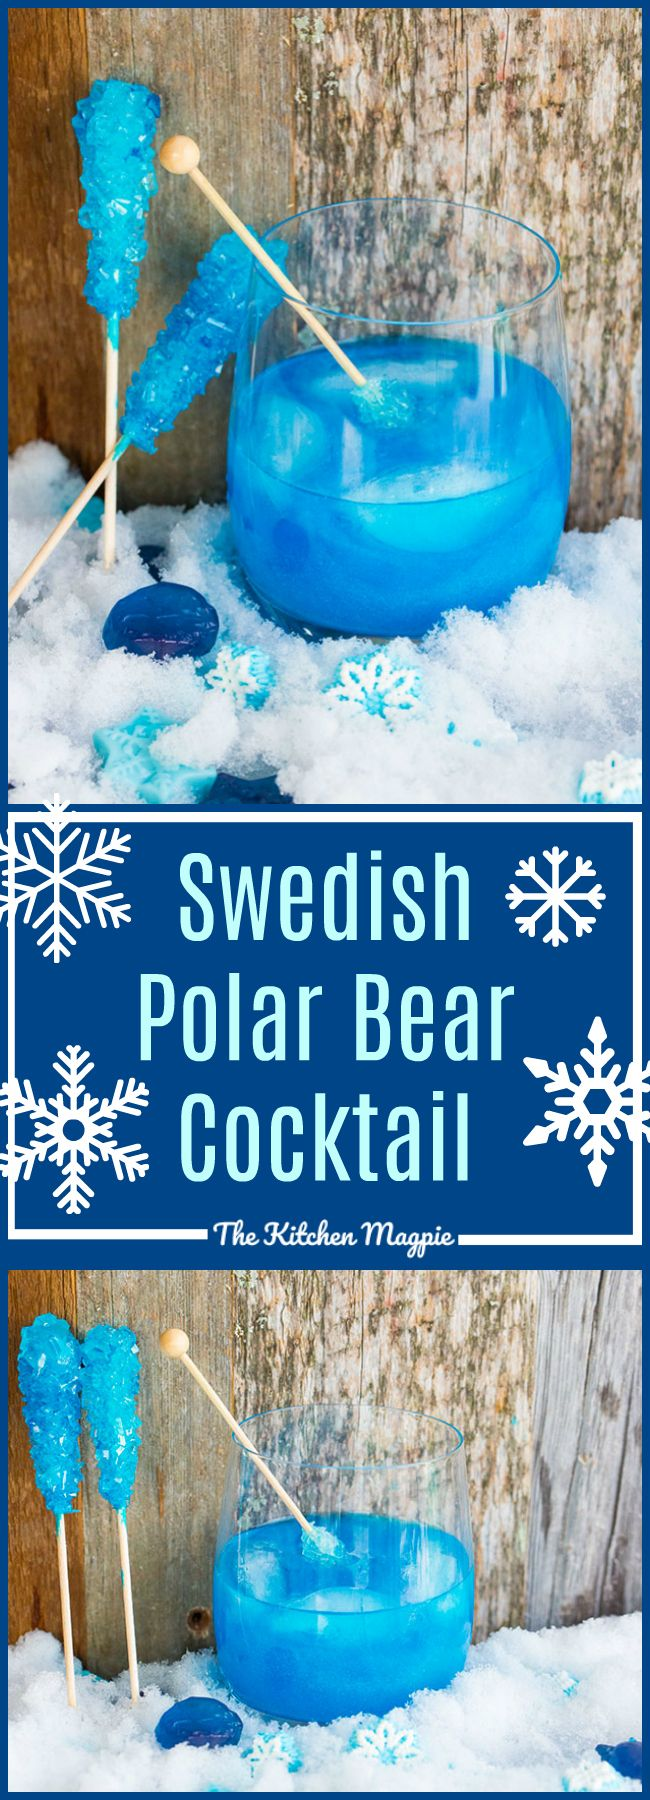 The Swedish Polar Bear Cocktail! This raspberry flavoured cocktail is THE cocktail for your winter parties! Or Tuesdays, I don't judge! Recipe from @kitchenmagpie #cocktails #christmas #raspberry #recipe #booze #boozy #holidays #entertaining